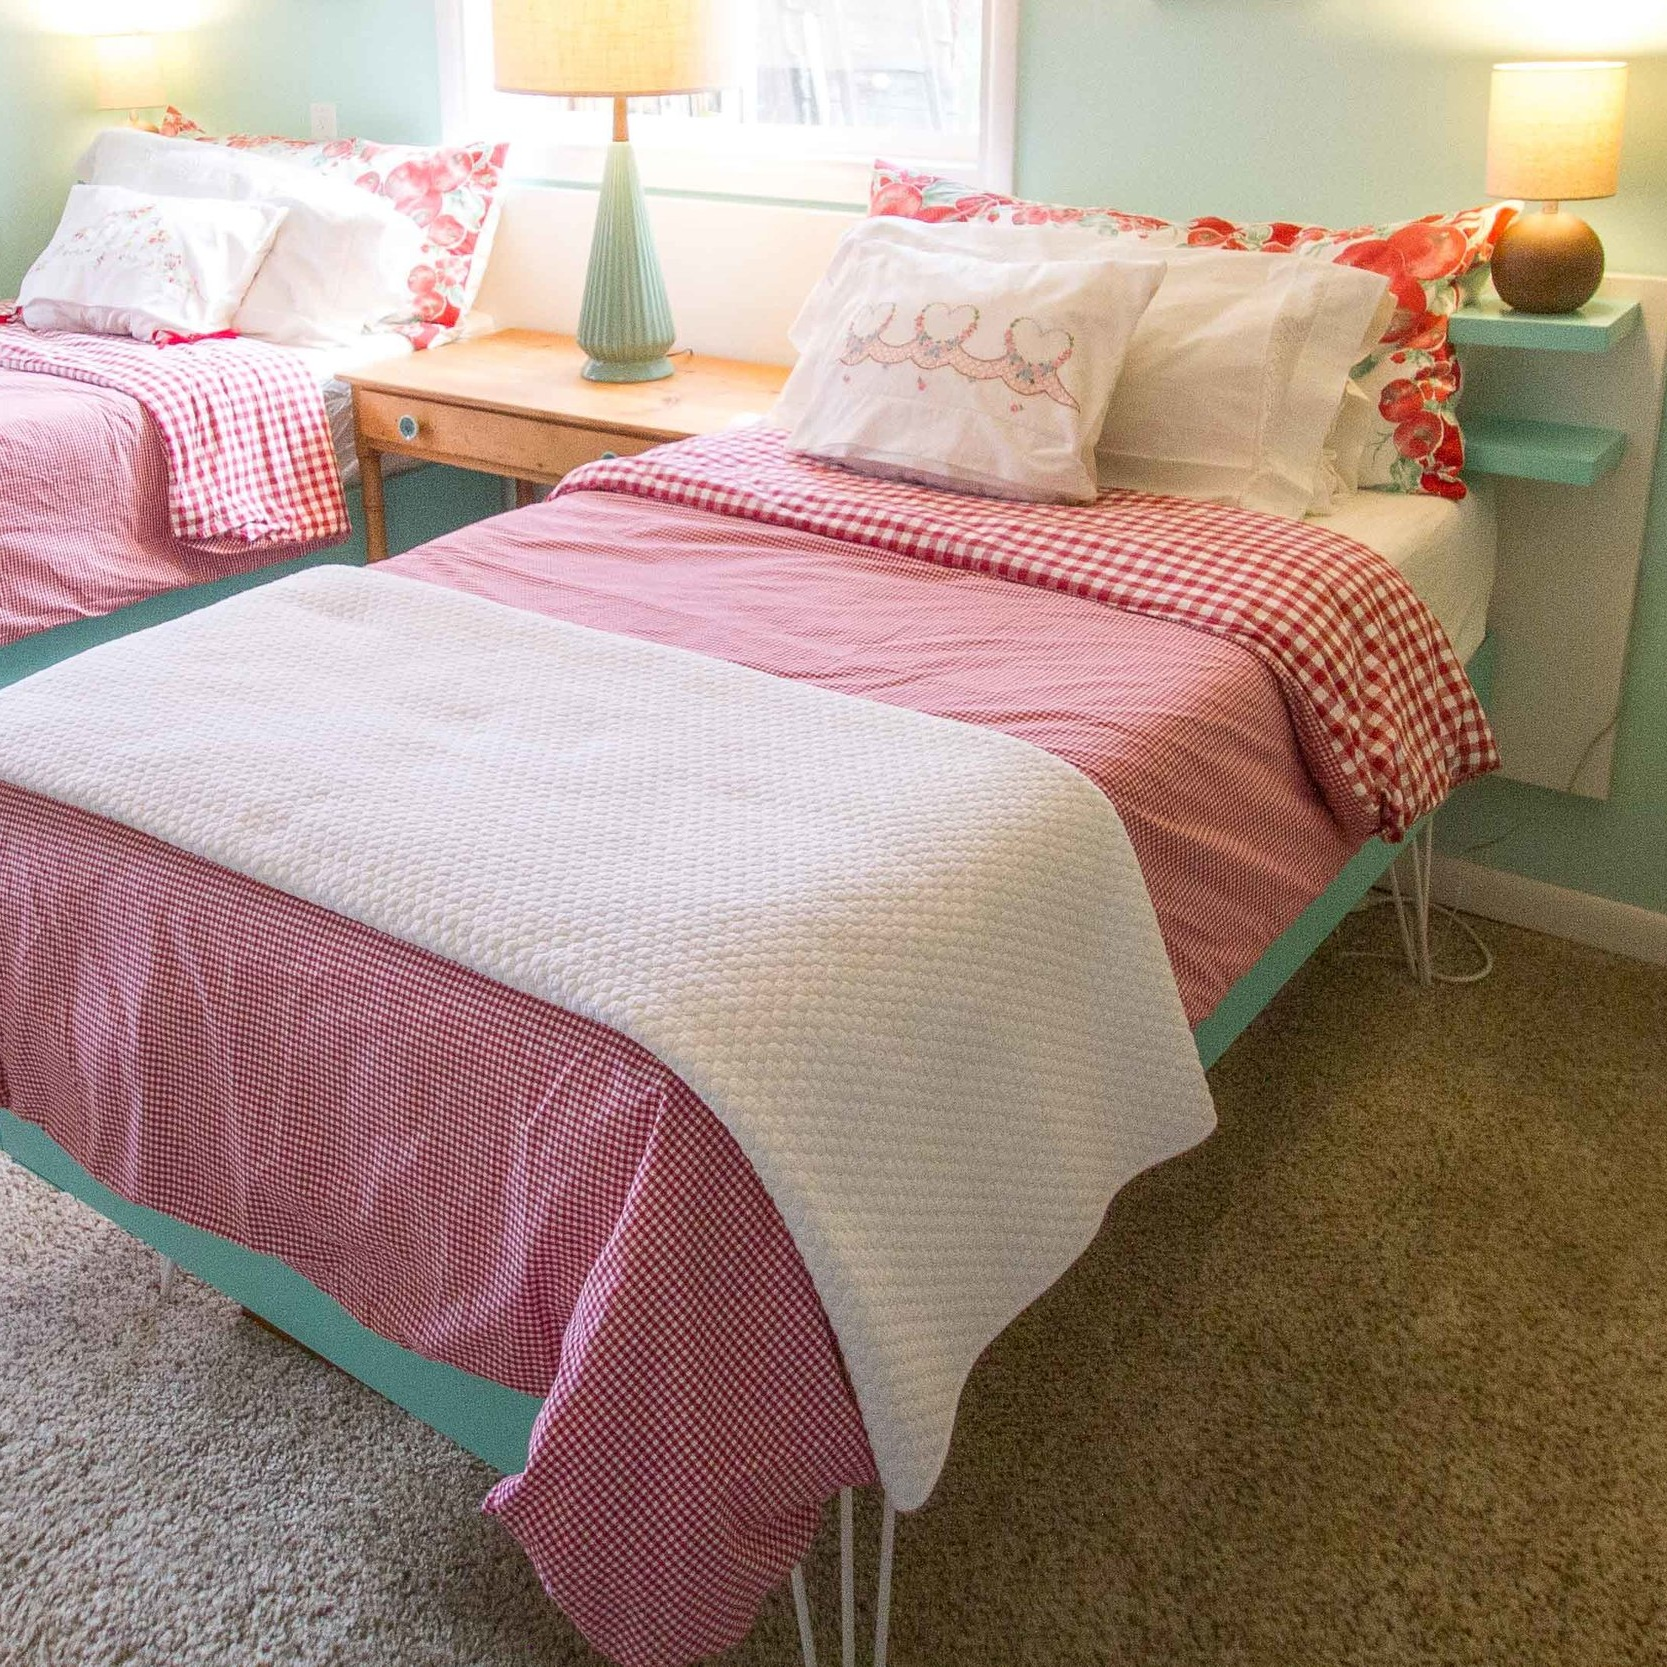 Bedding & Linens - Spring 2019 One Room Challenge